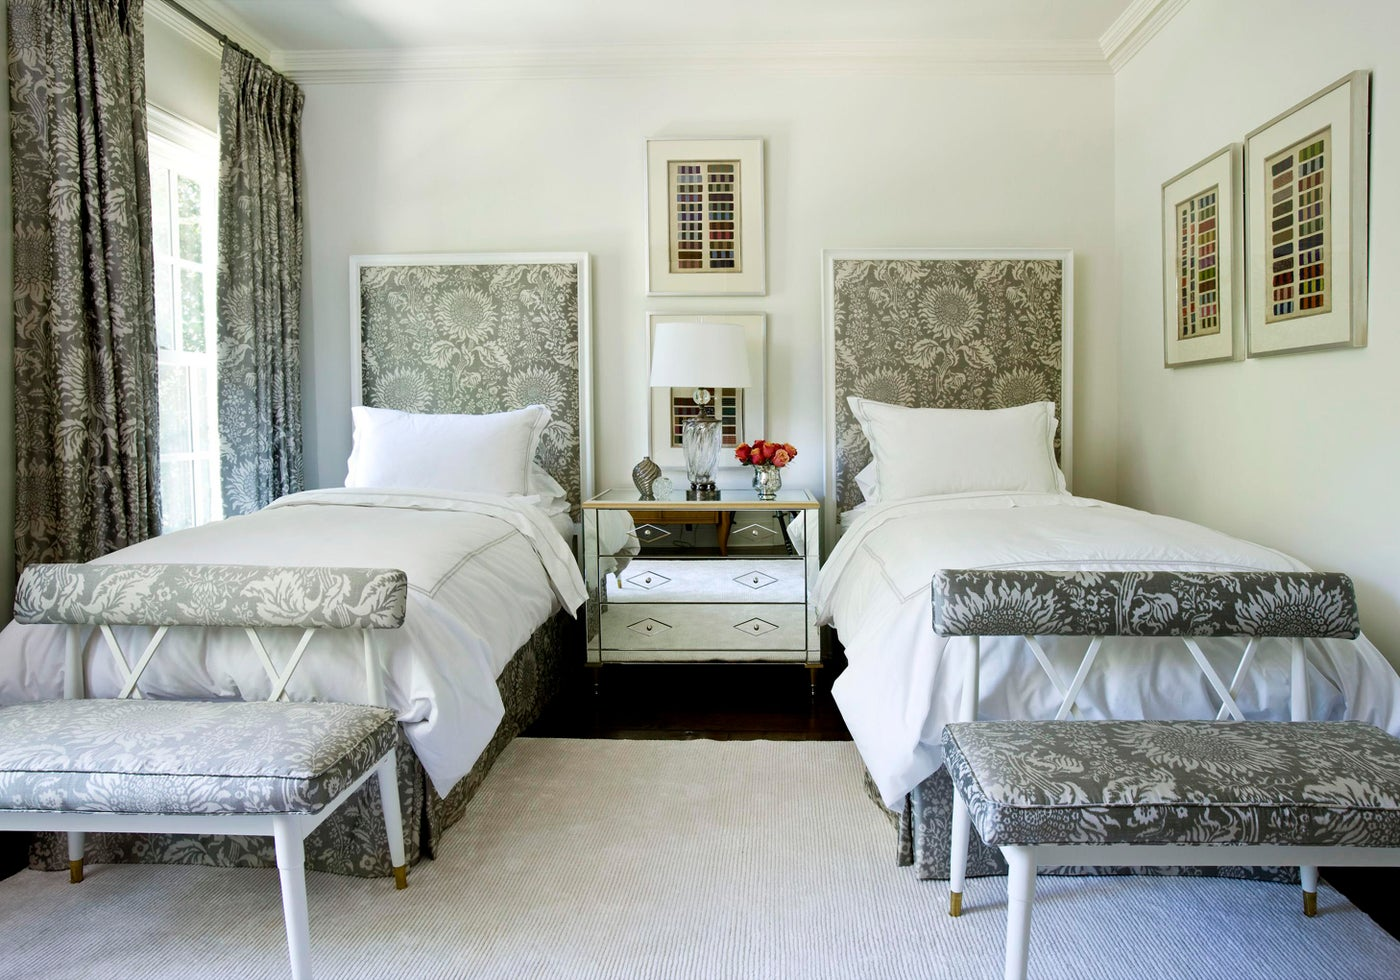 At Home guest bedroom with two twin beds